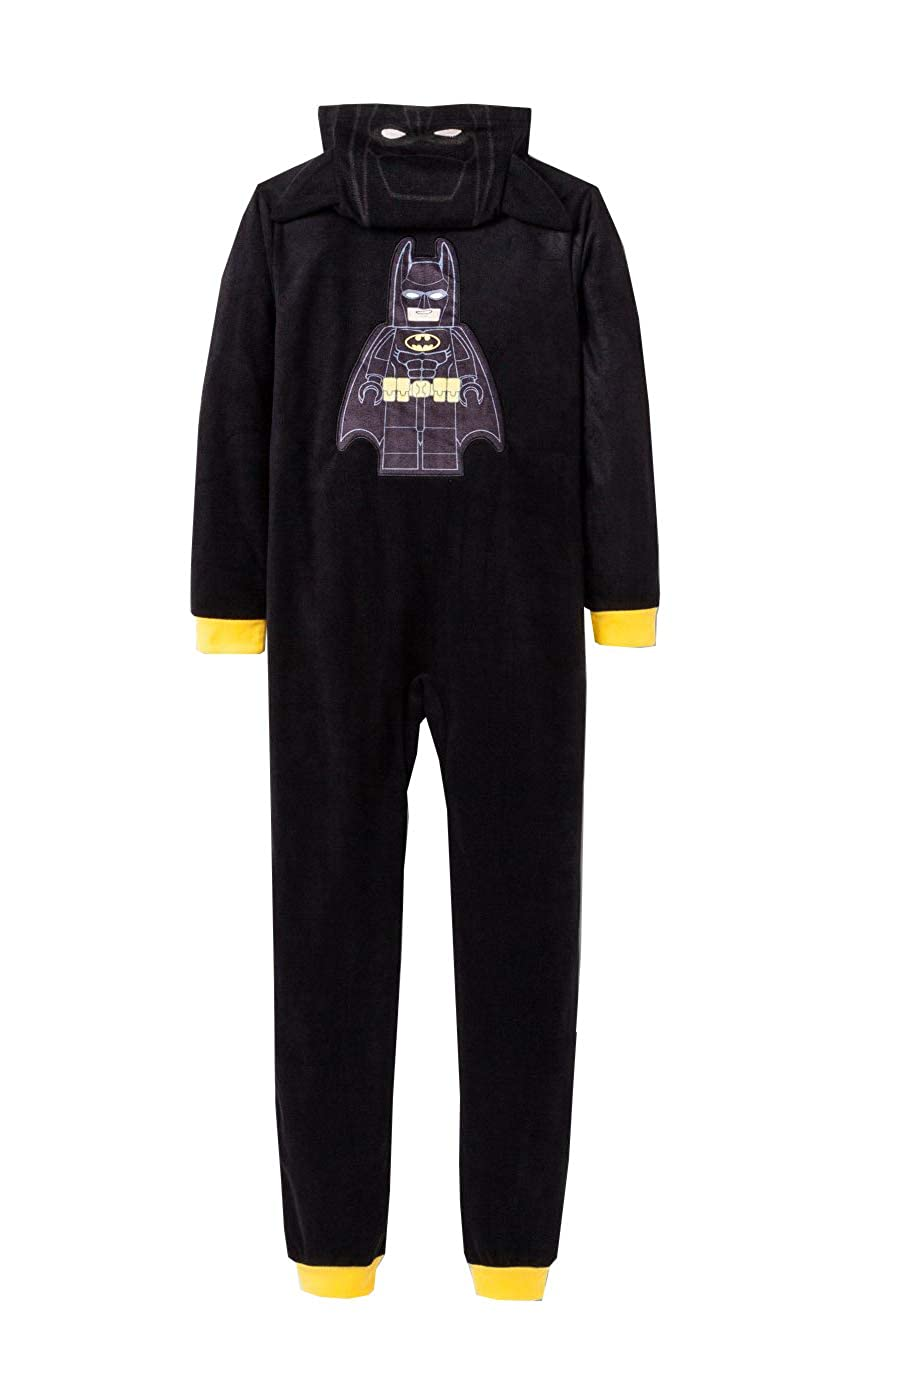 Batman Boys Hooded Pajama Union Suit